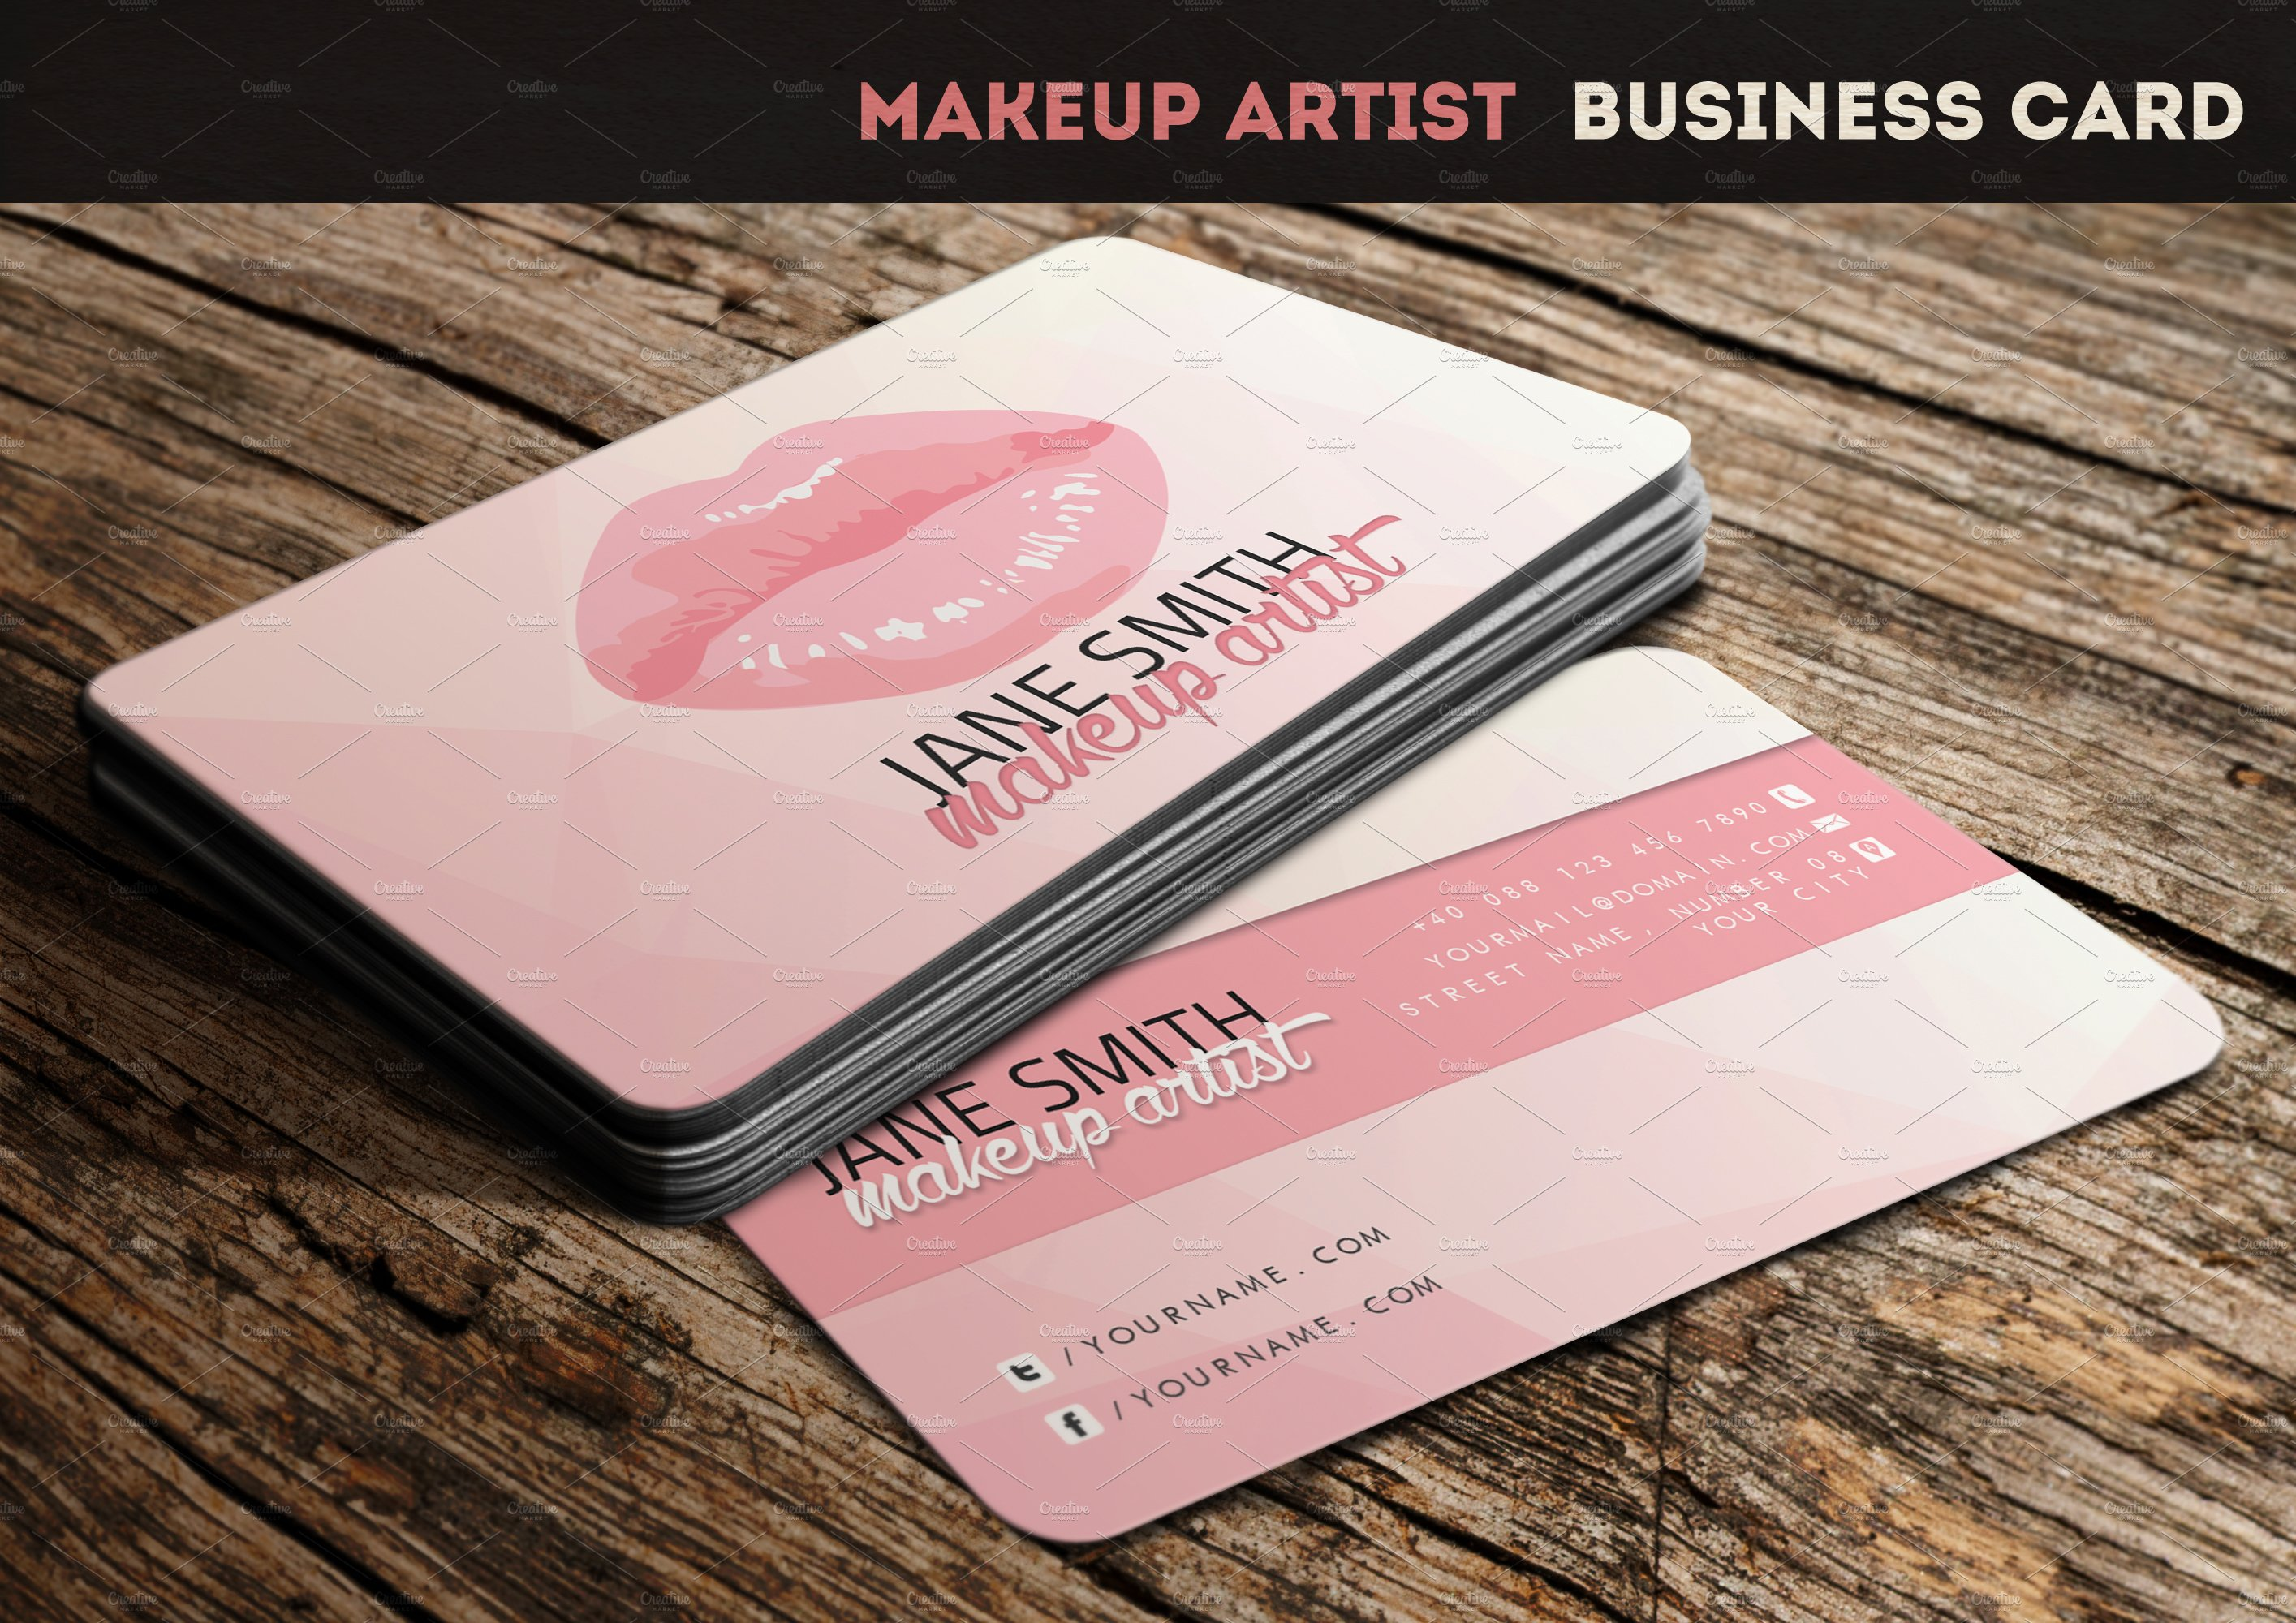 makeup artist business card business card templates creative market - Artist Business Cards